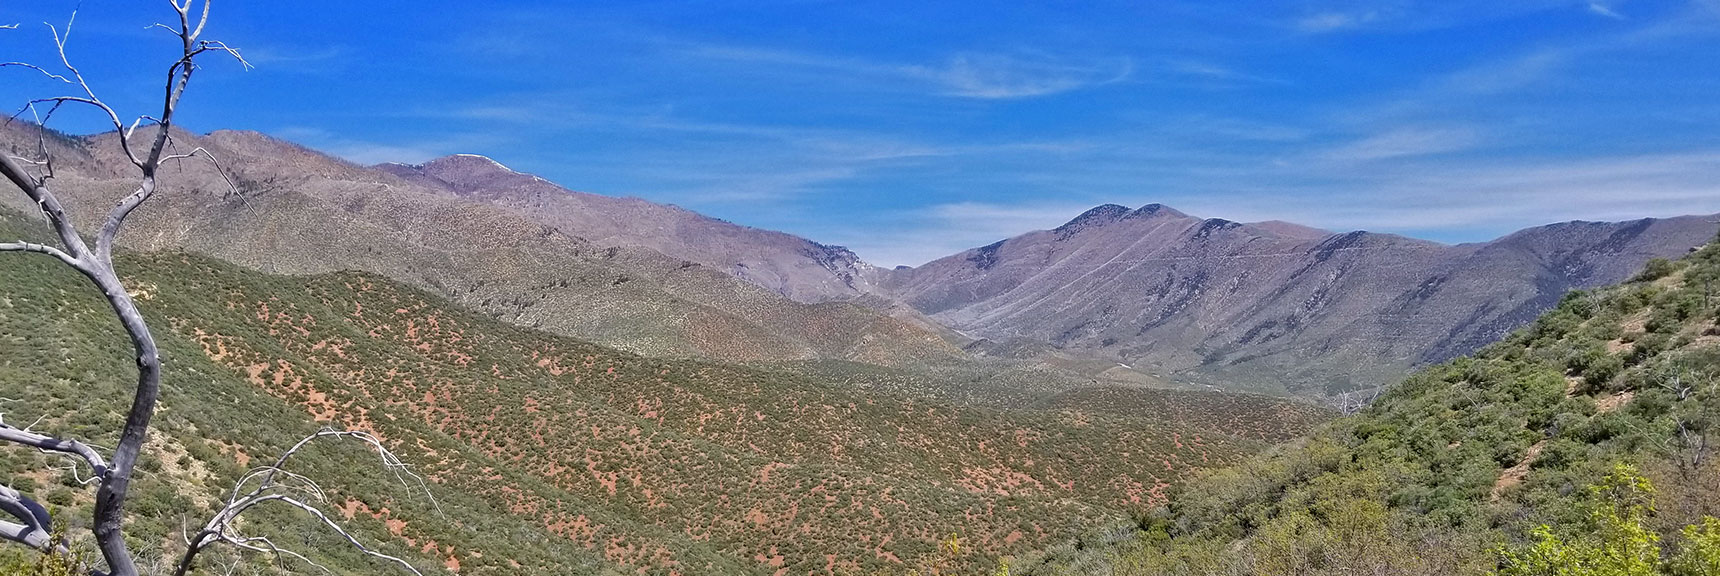 Griffith Peak, Harris Mountain and Saddle Viewed from Griffith Shadow Trail, La Madre Mountains Wilderness, Nevada